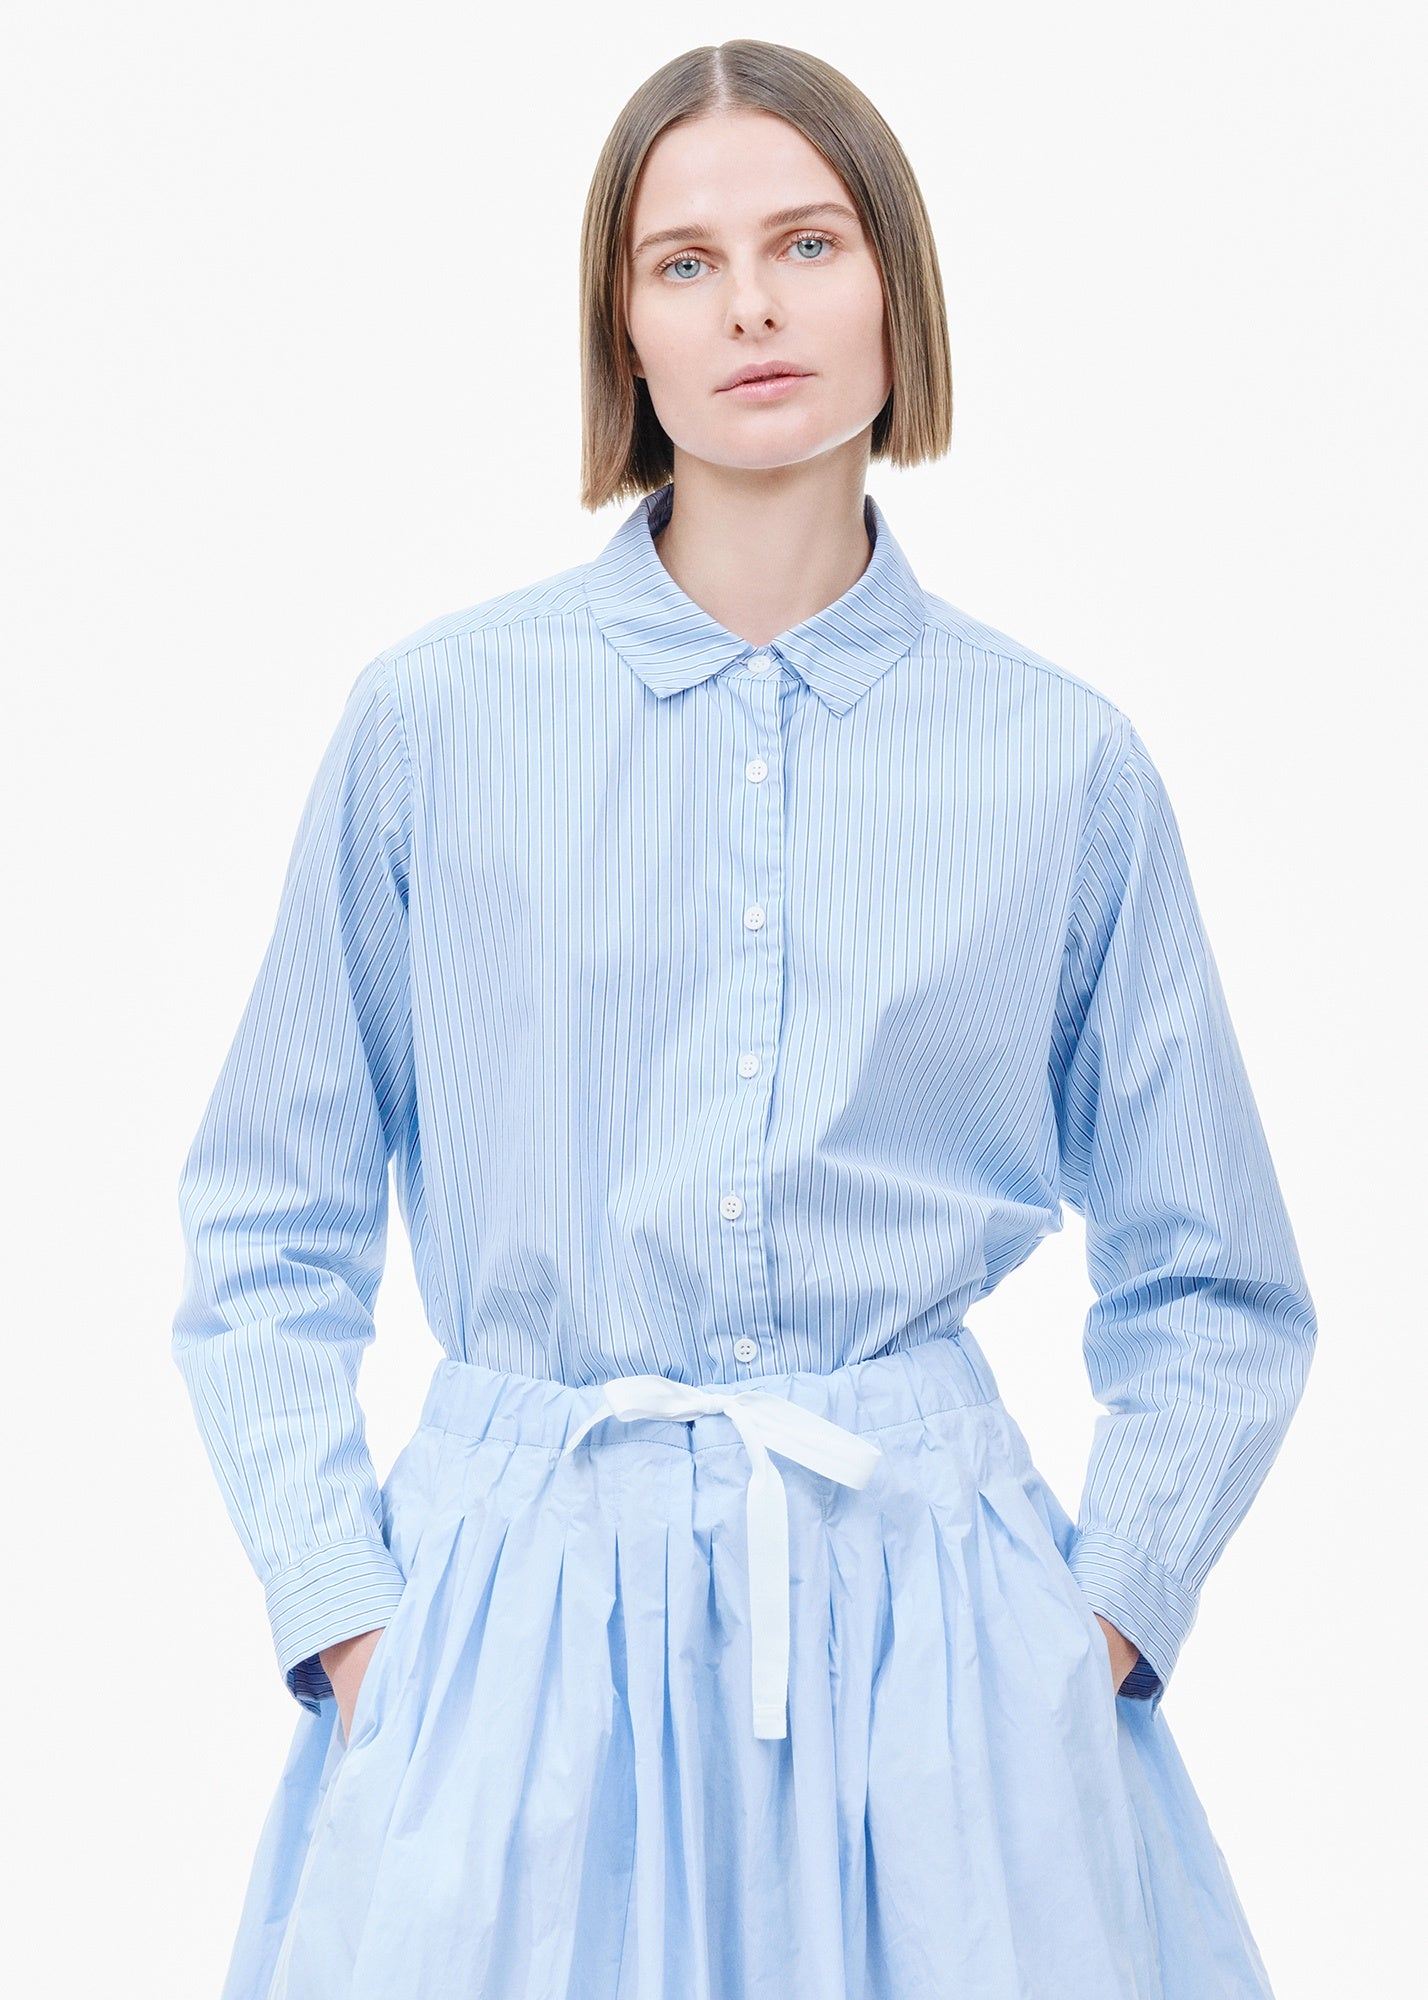 Marine Shirt Blue/ White Stripe